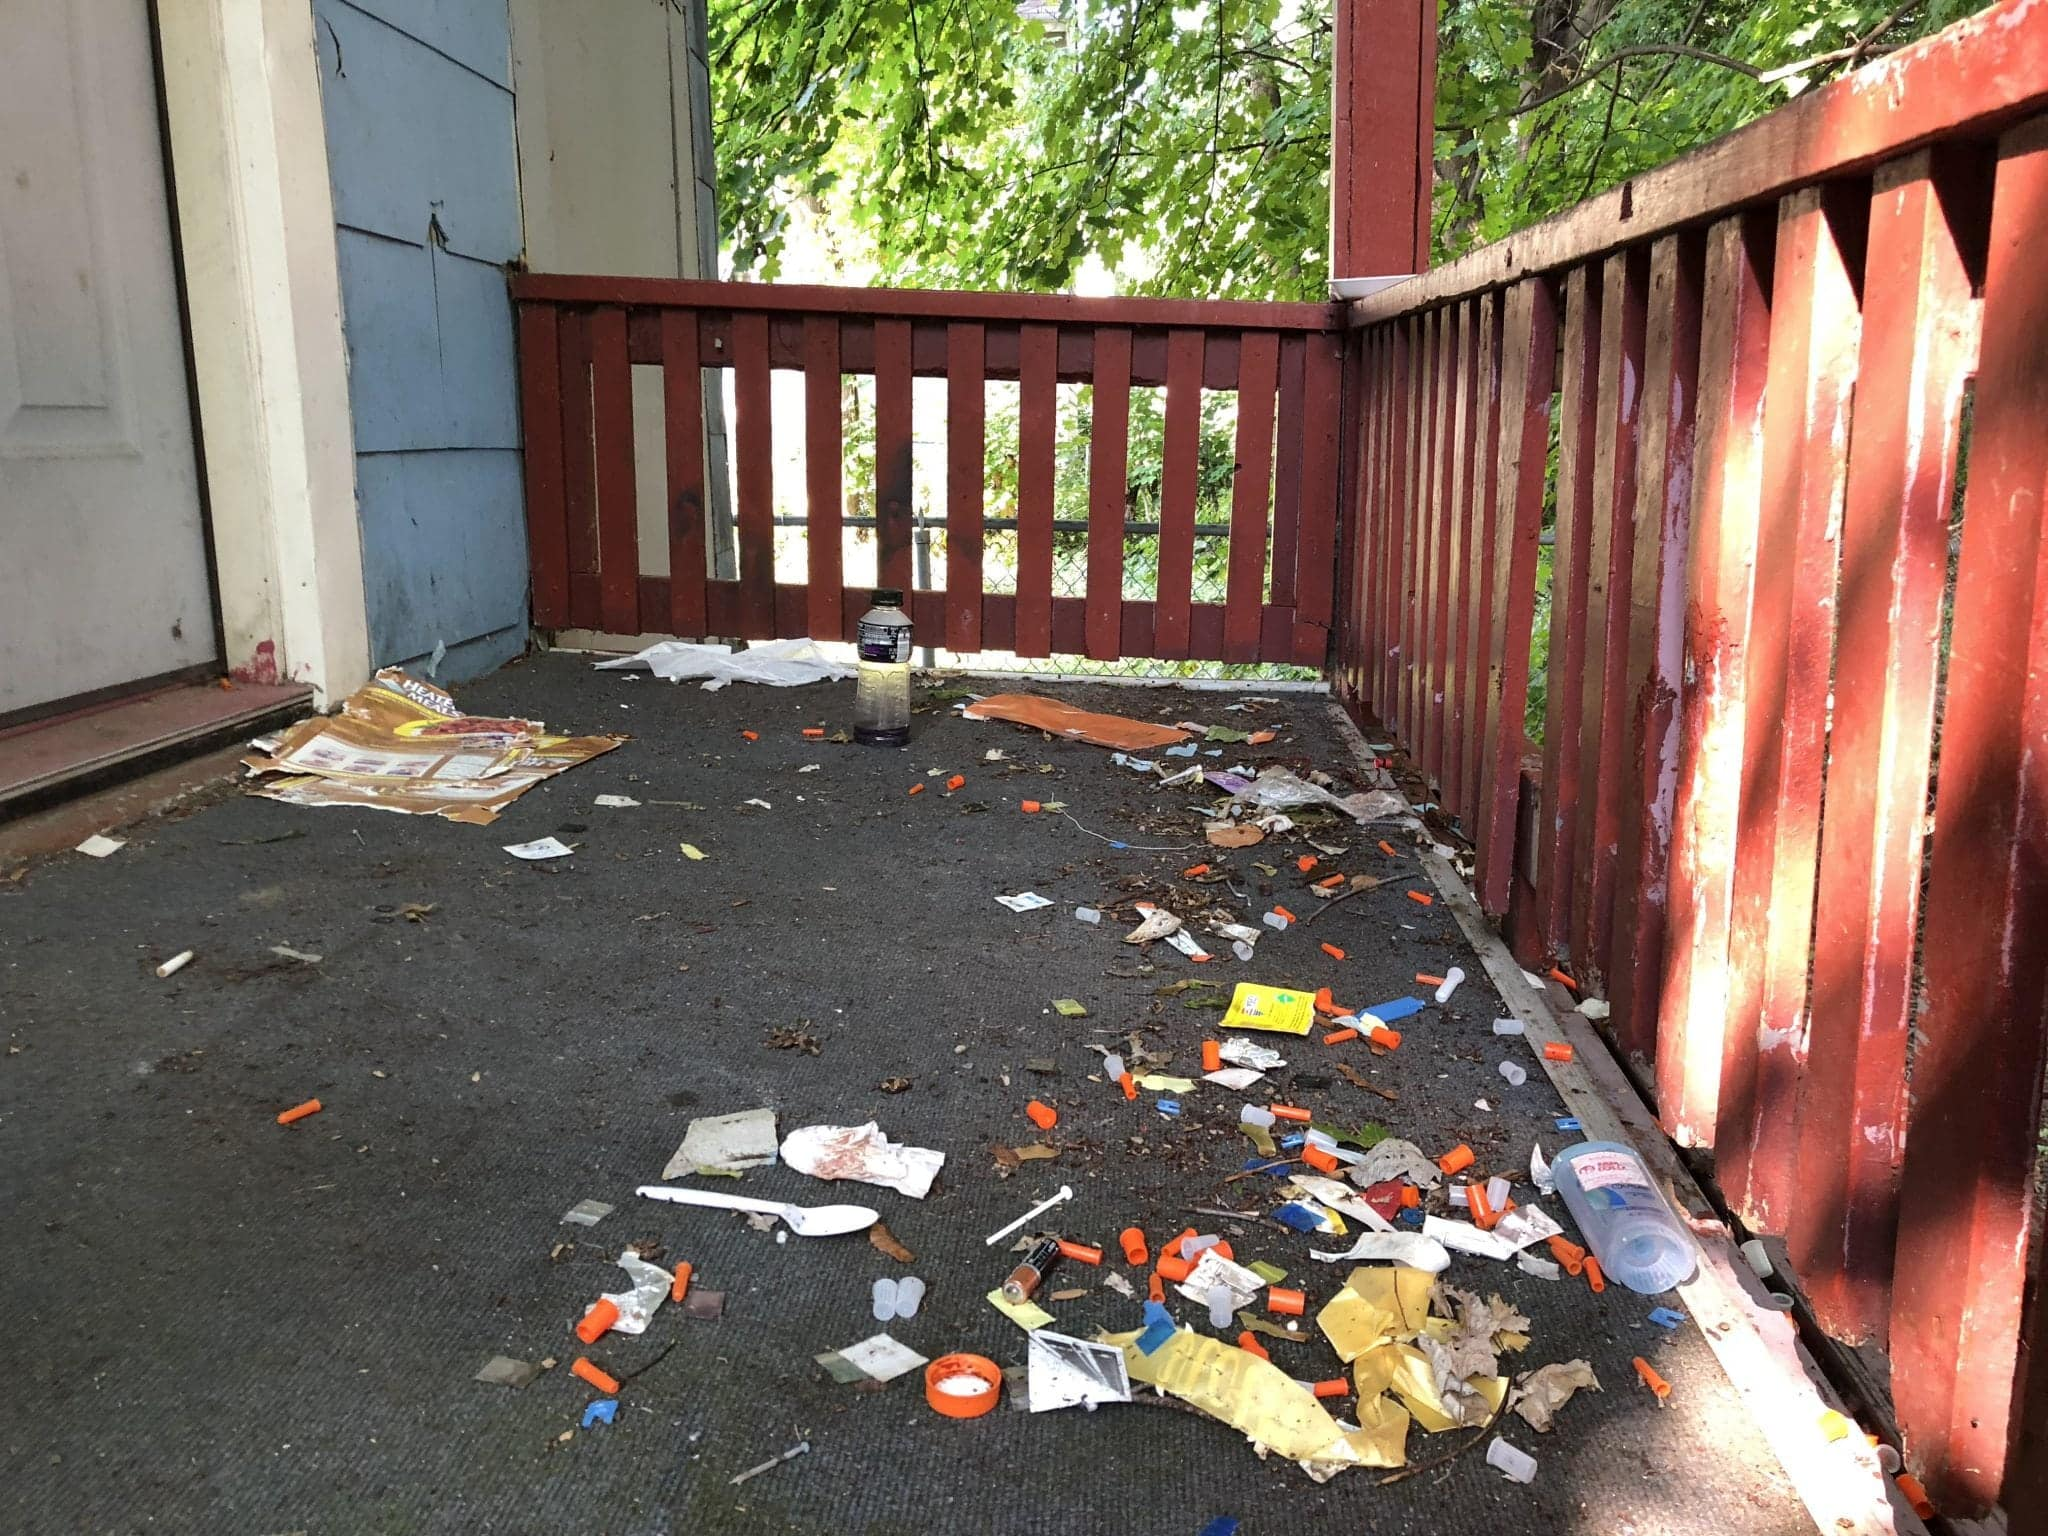 A Syracuse porch covered in used syringes is representative of the opioid crisis.